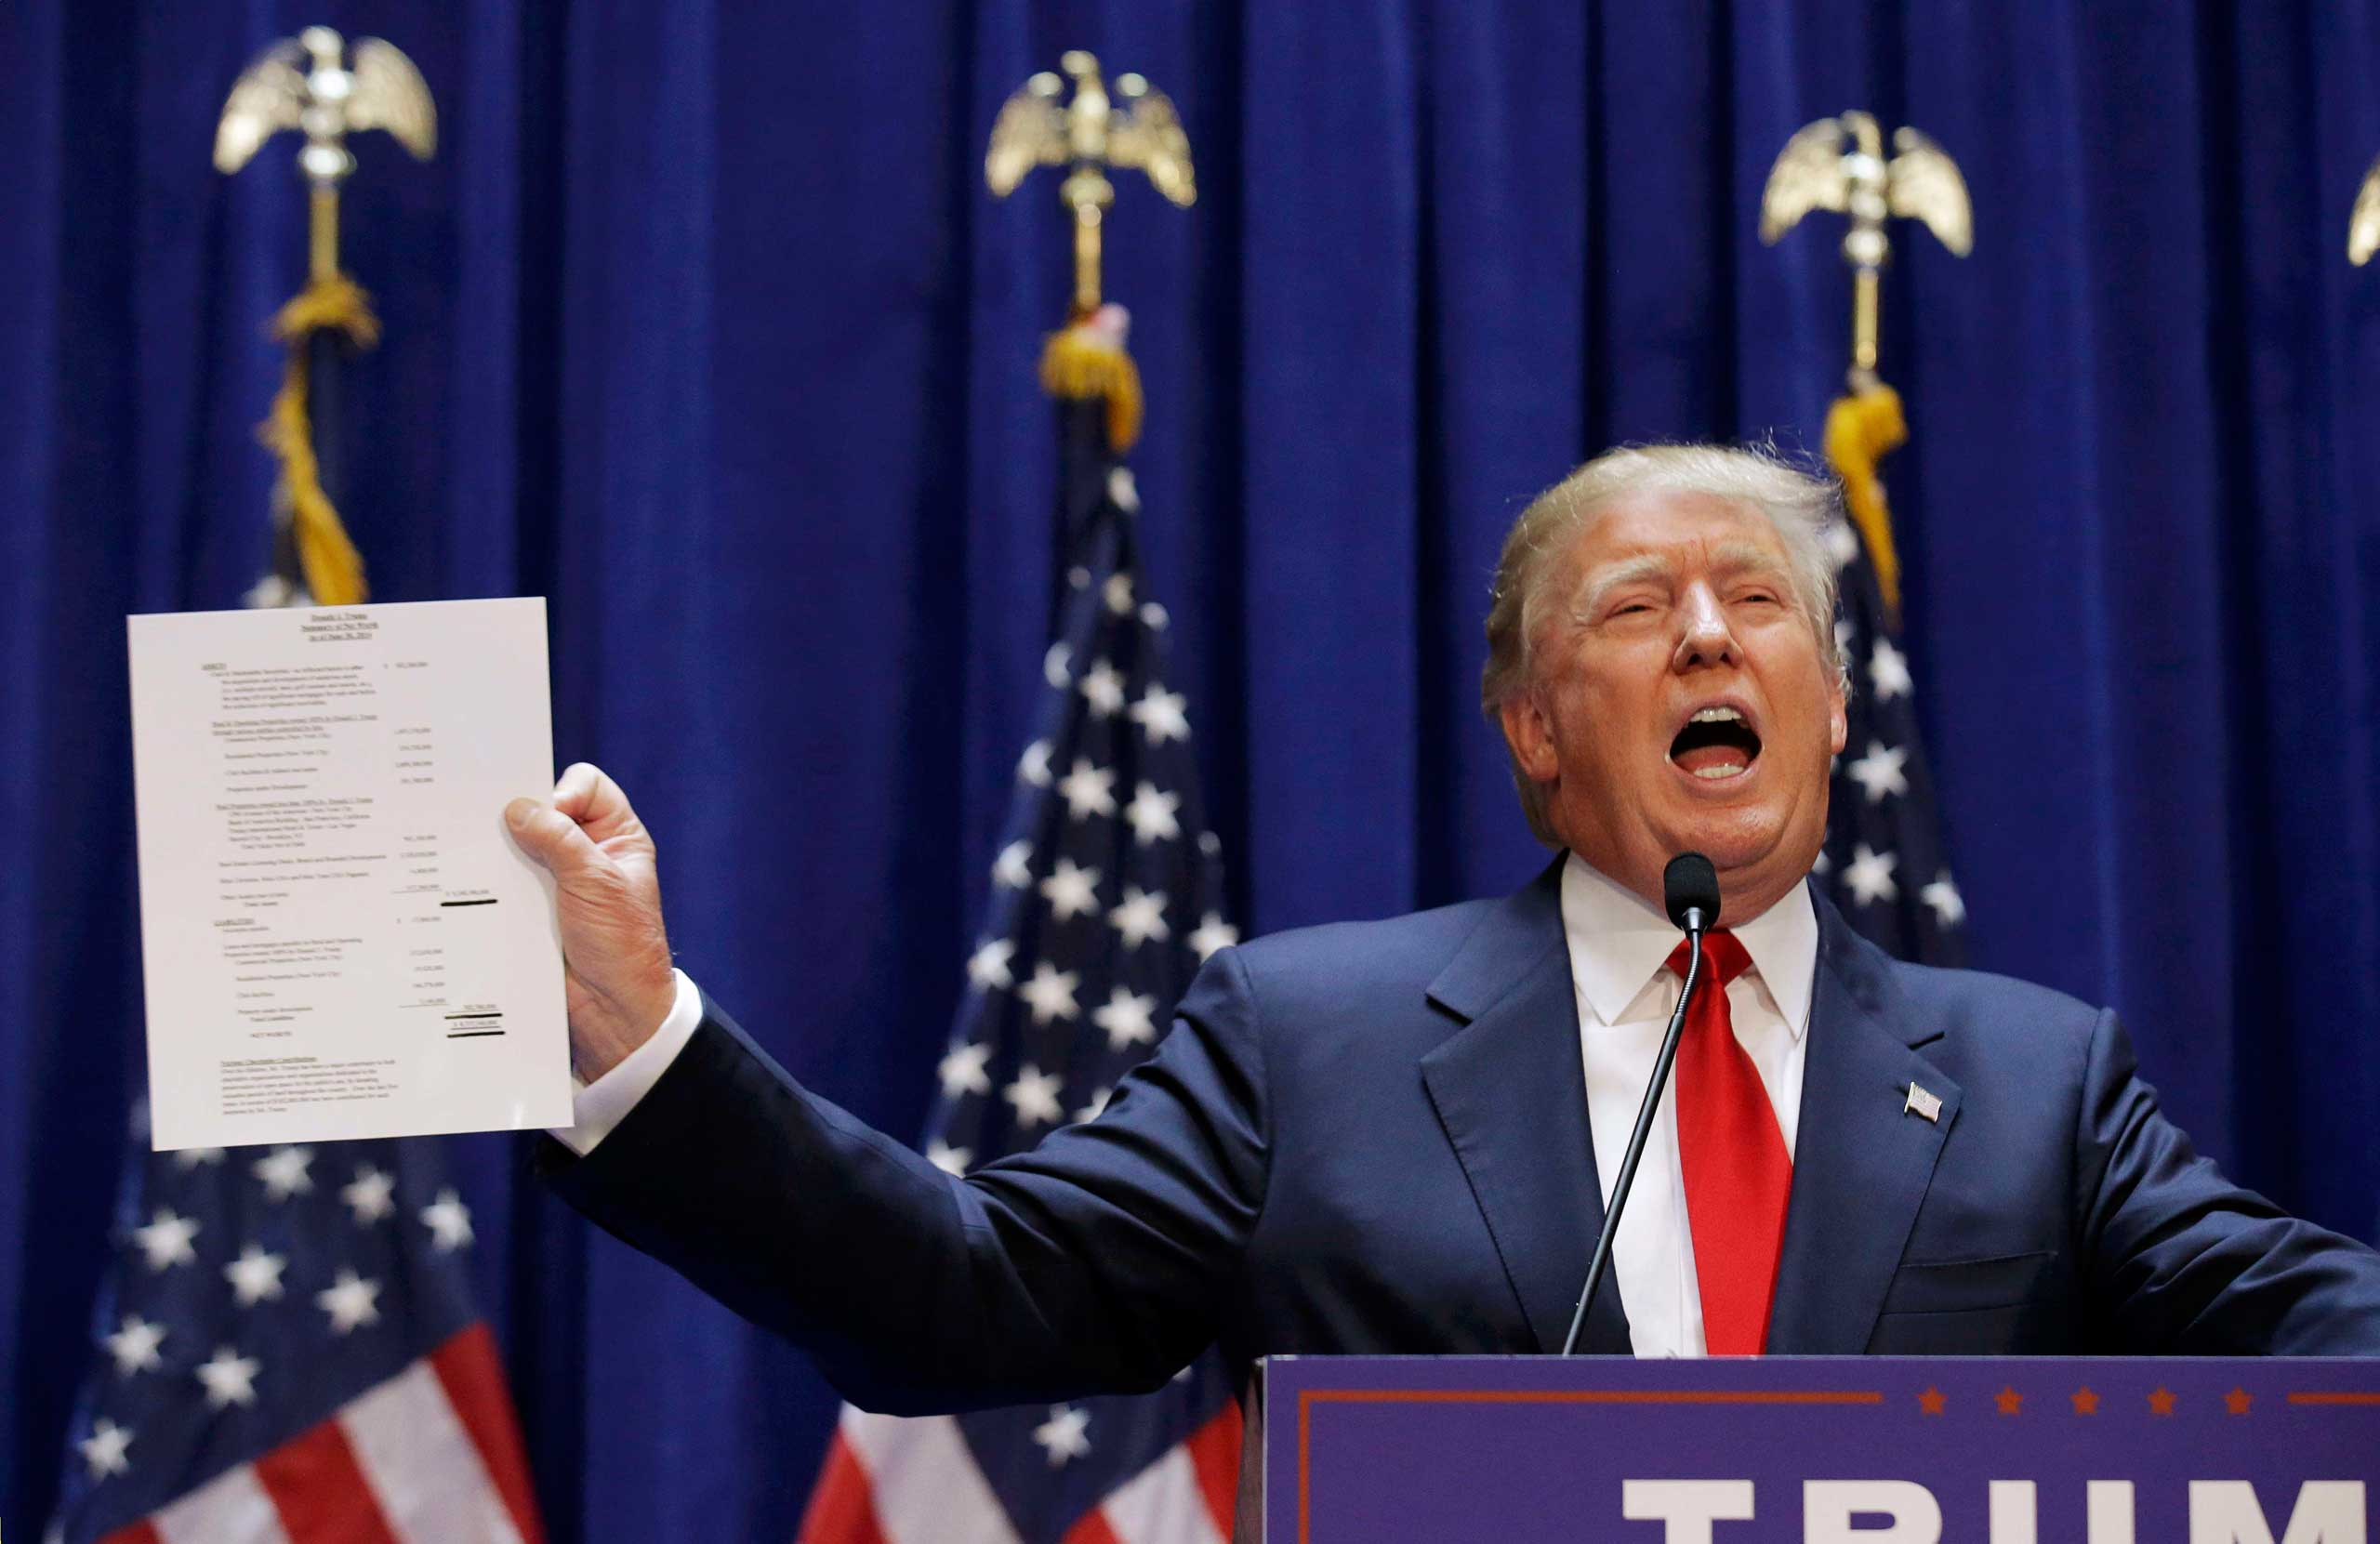 Donald Trump holds up his financial statement showing his net worth as he formally announces his campaign for the 2016 Republican presidential nomination during an event at Trump Tower in New York City on June 16, 2015.